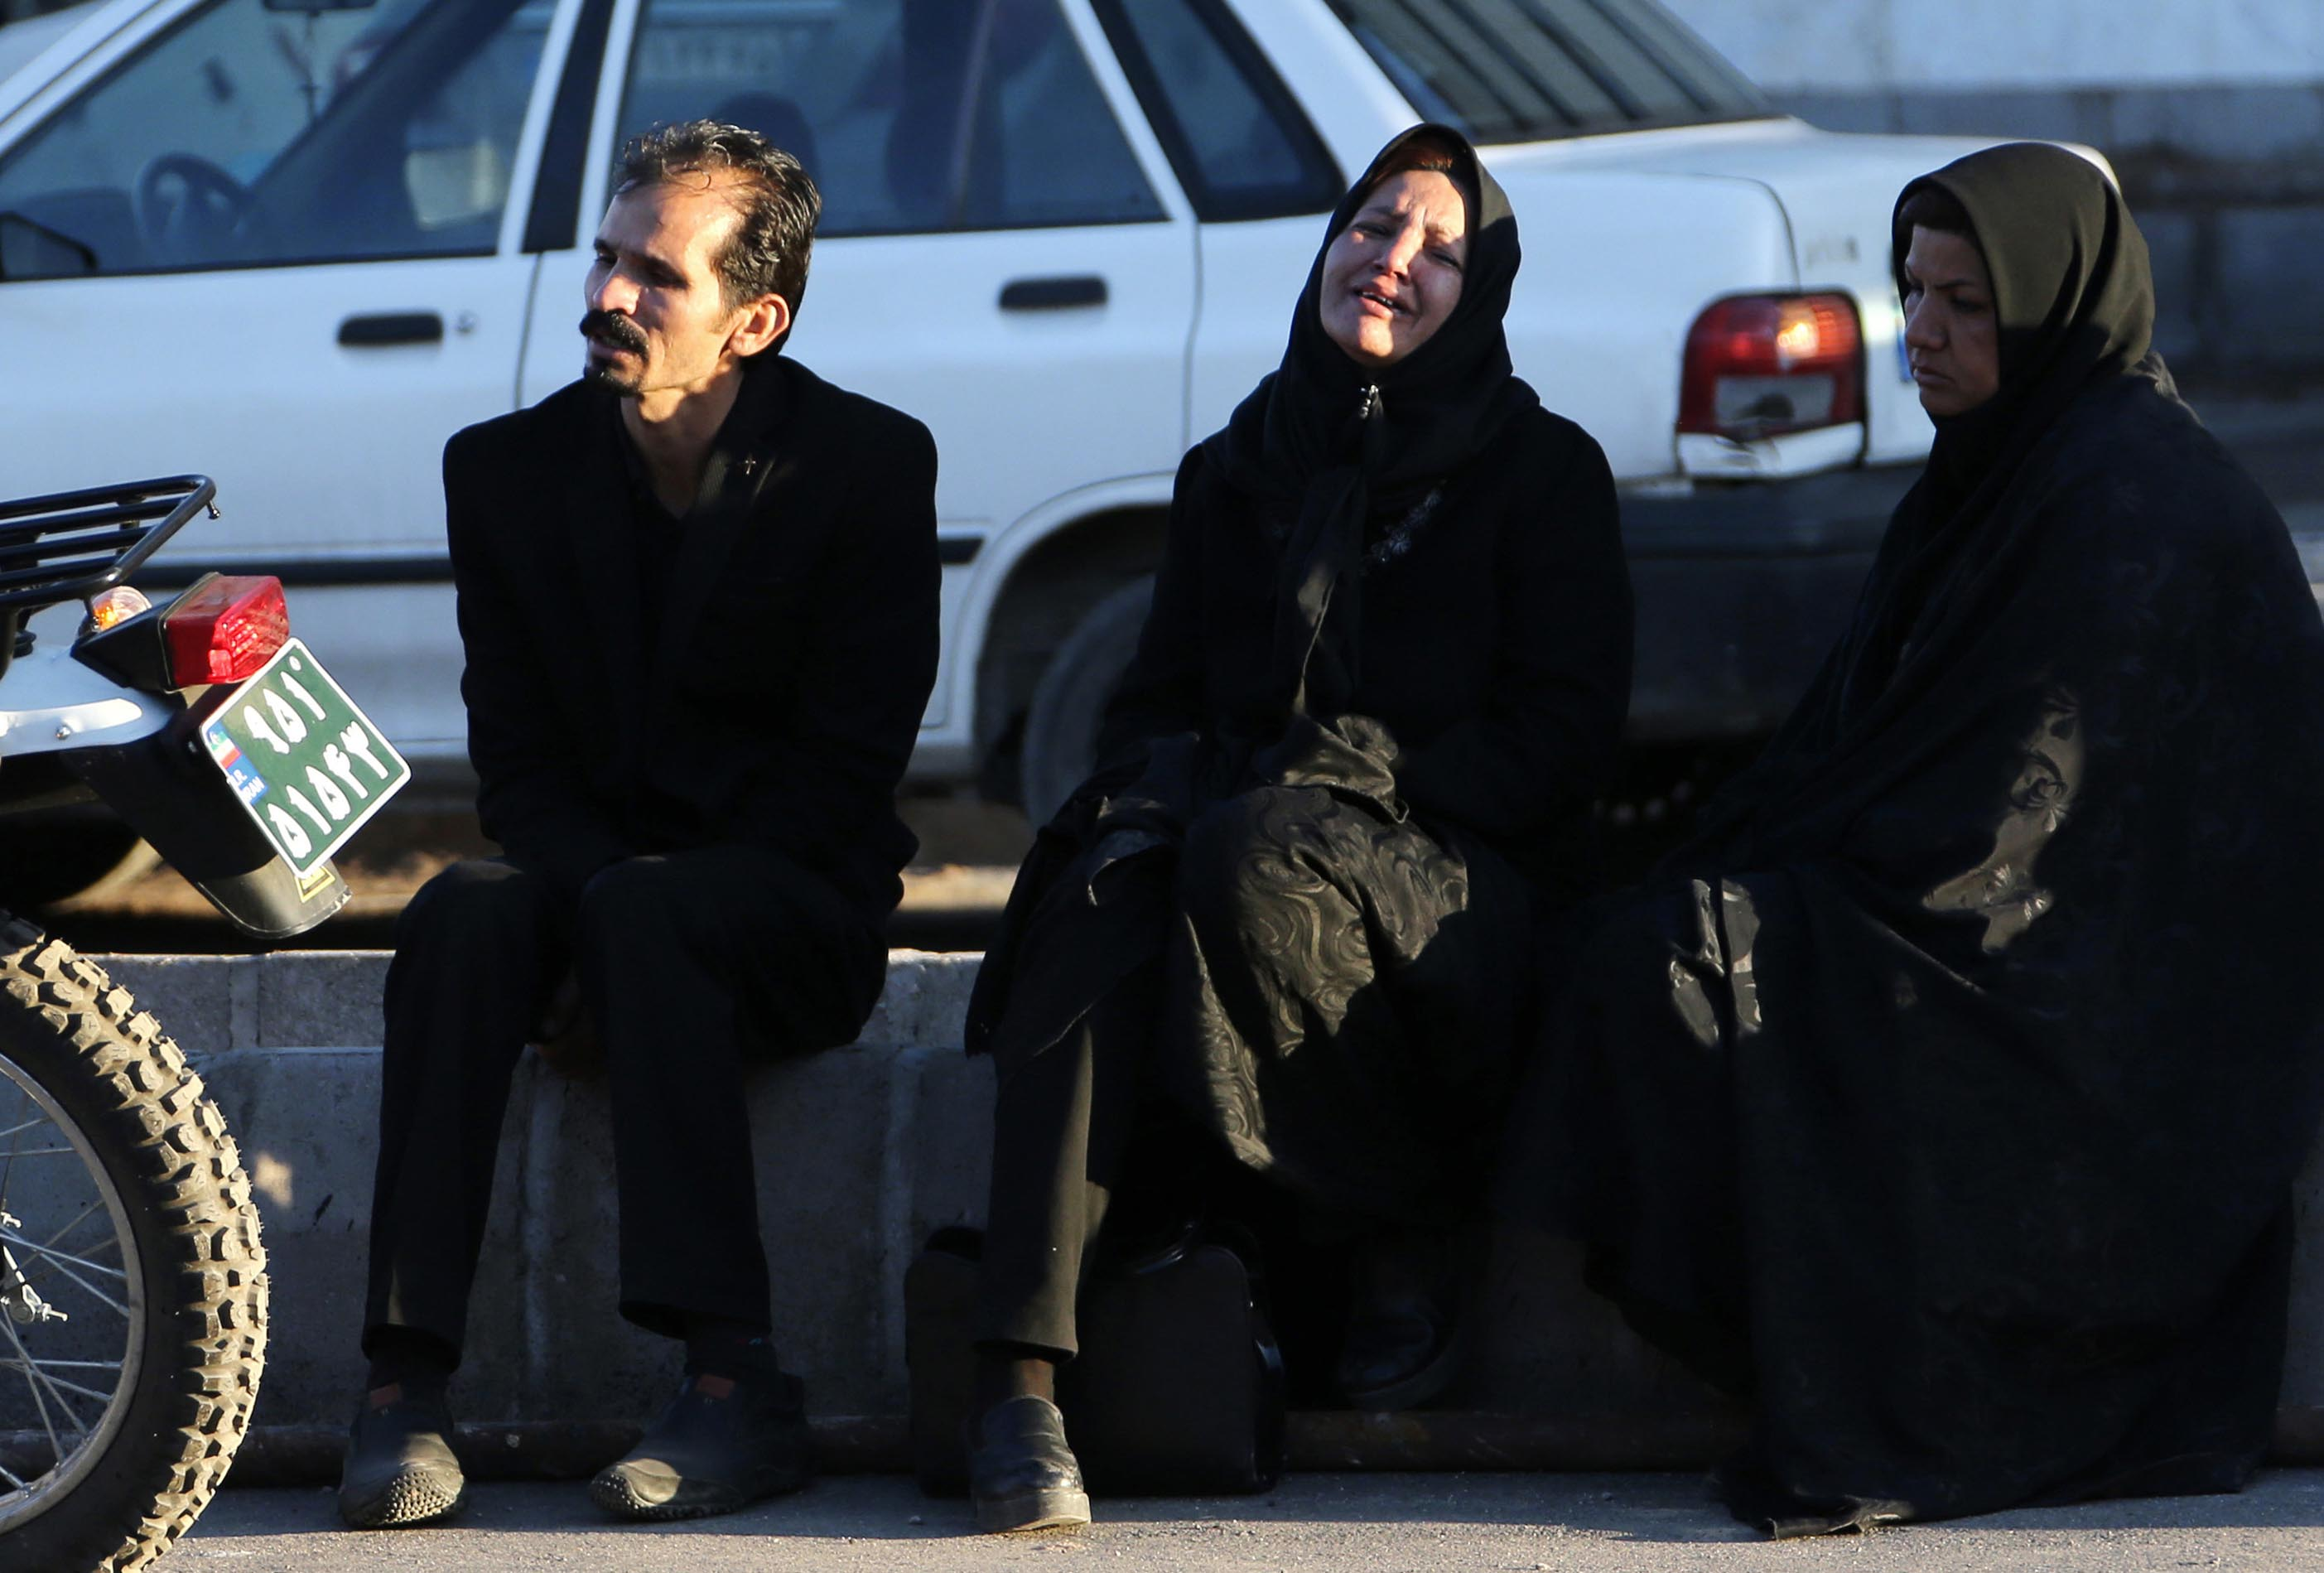 Relatives of stampede victims wait outside Bahonar hospital in Kerman. Credit: Attar Kenare/AFP via Getty Images)